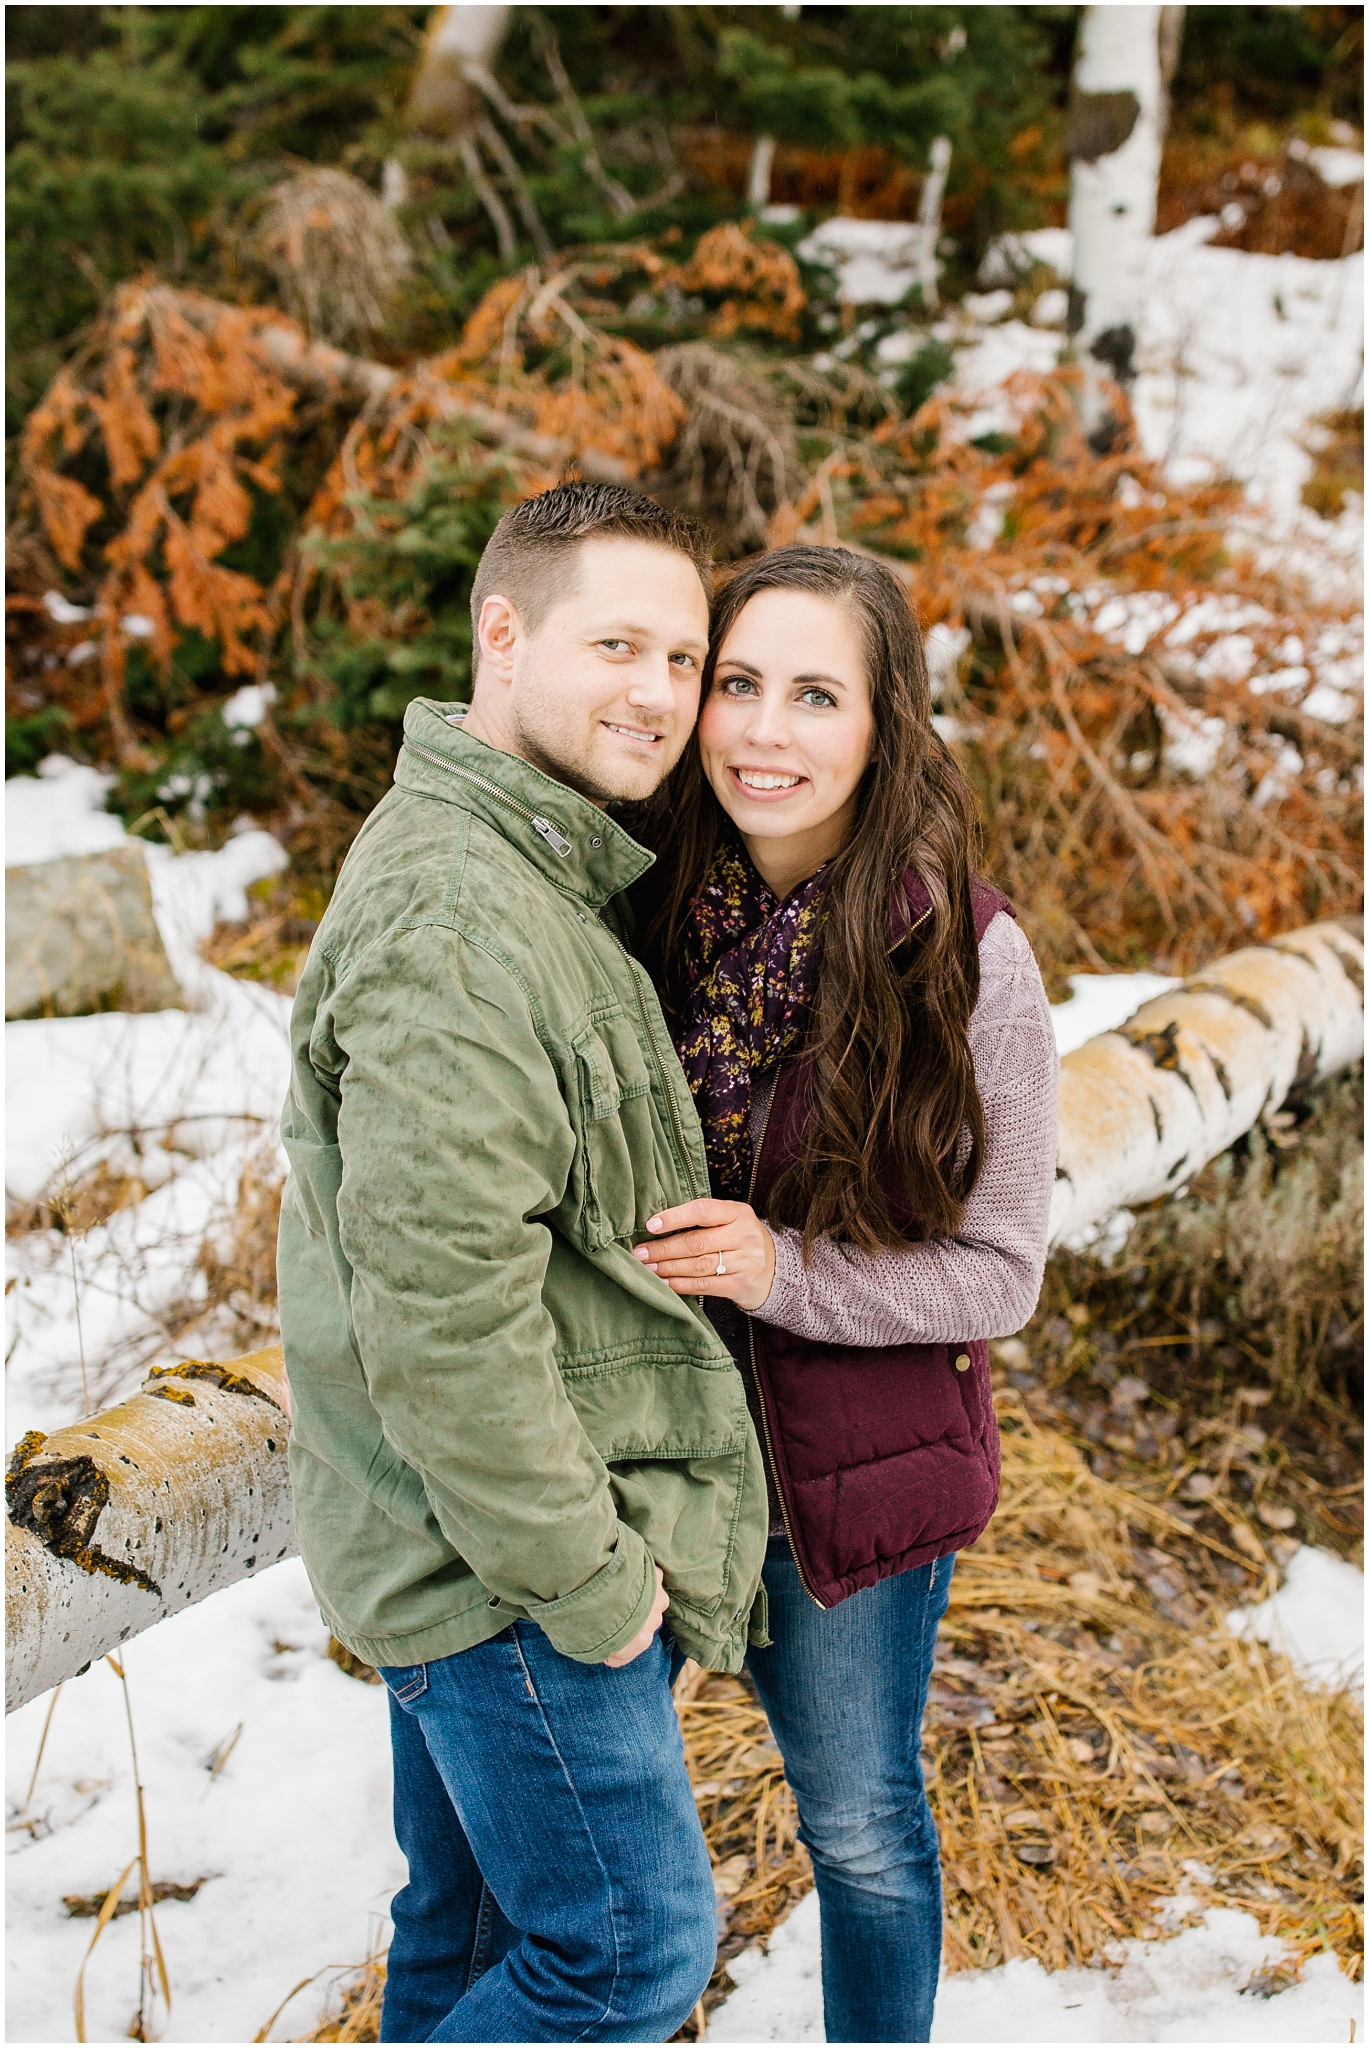 SSEngagements-71_Lizzie-B-Imagery-Utah-Wedding-Photographer-Park-City-Salt-Lake-City-Logan-Utah-Engagement-Session.jpg